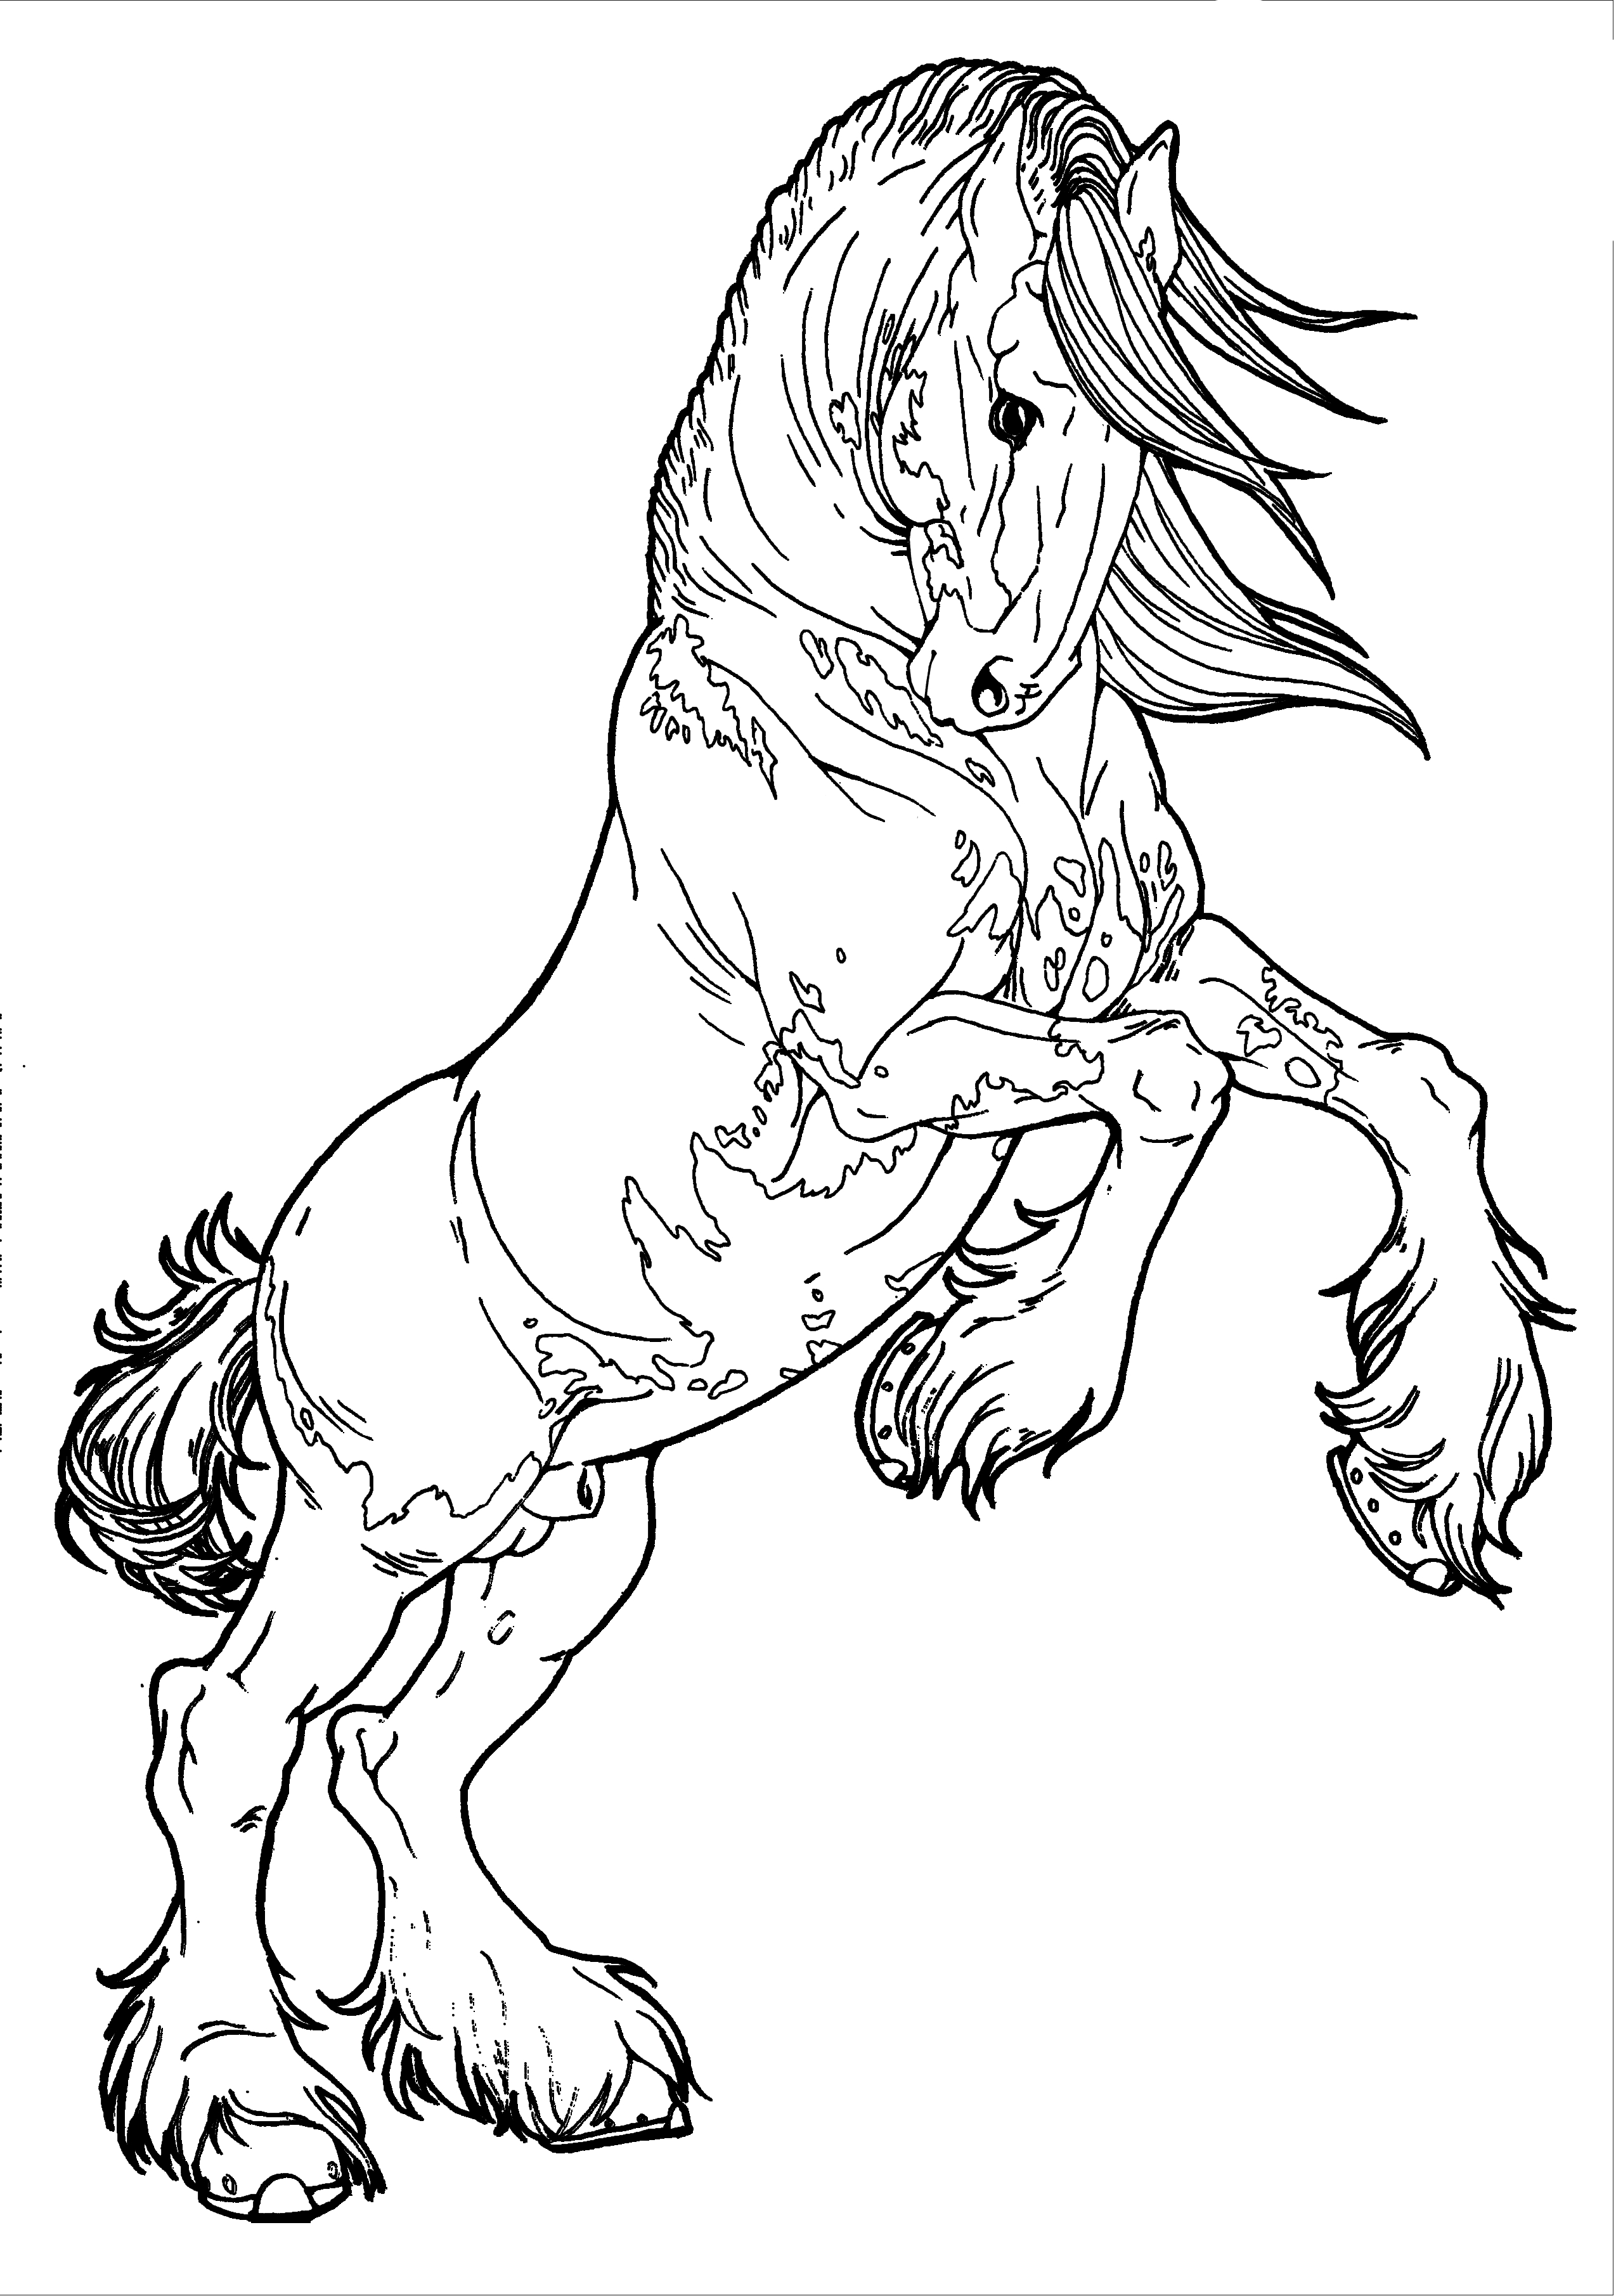 horse print off coloring pages - photo#29